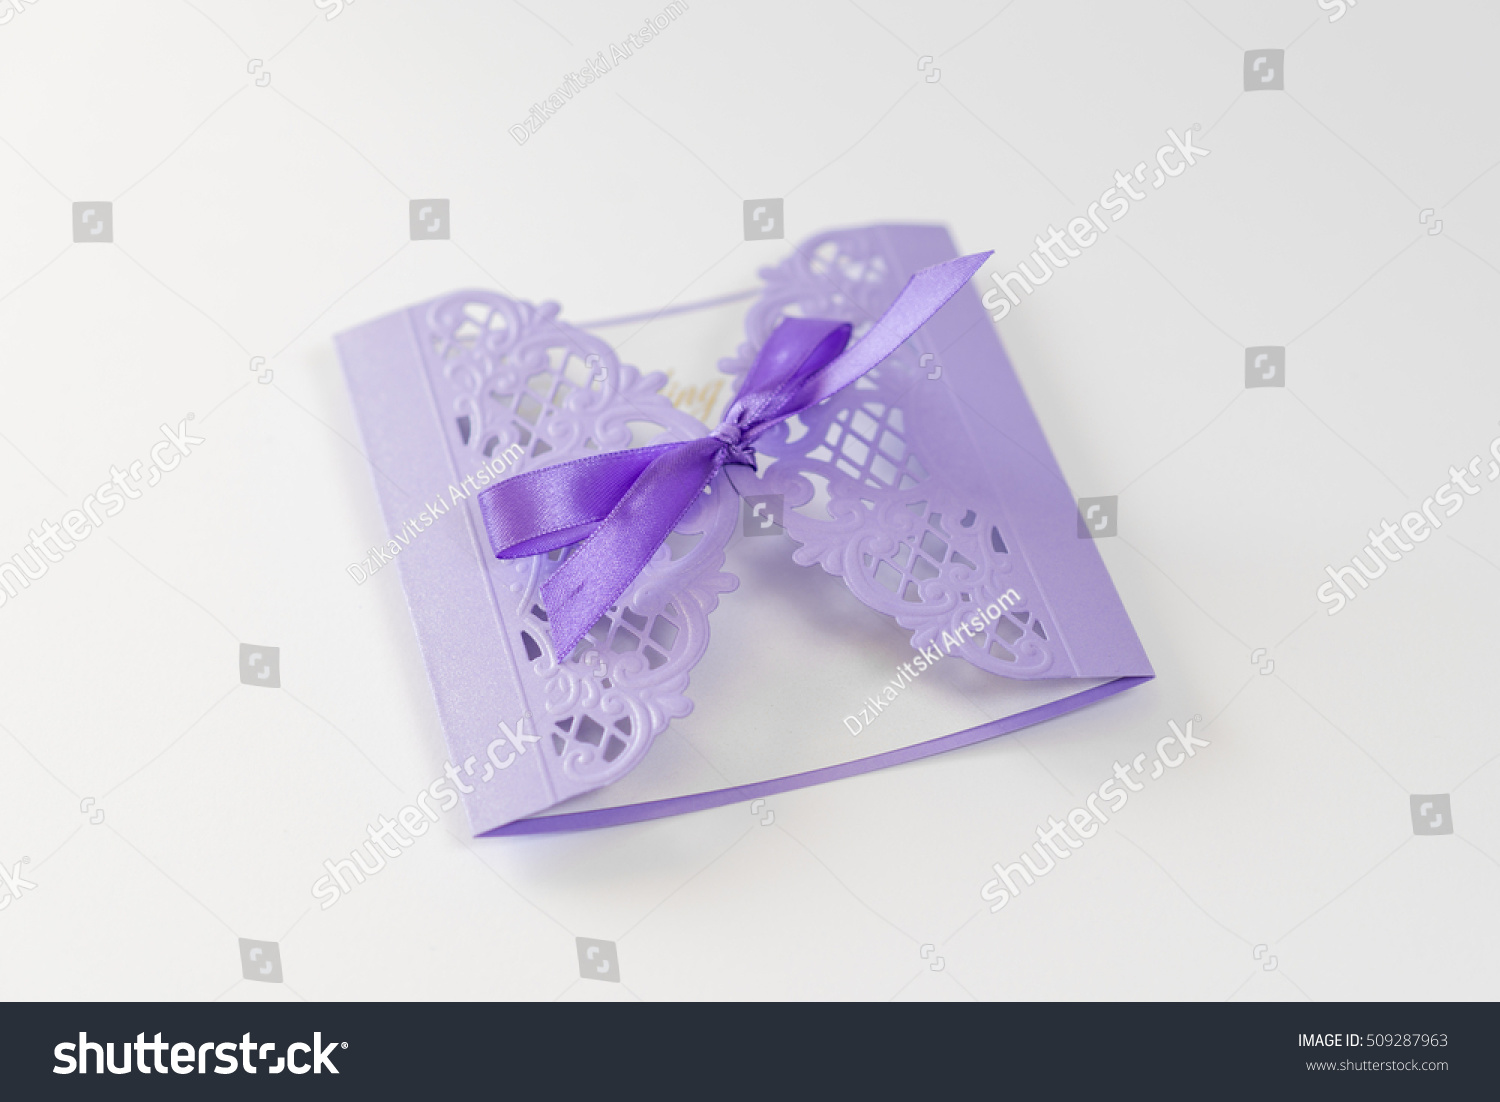 Wedding Invitations With Purple Ribbon: Wedding Invitation Cutting Decorated Purple Ribbon Stock